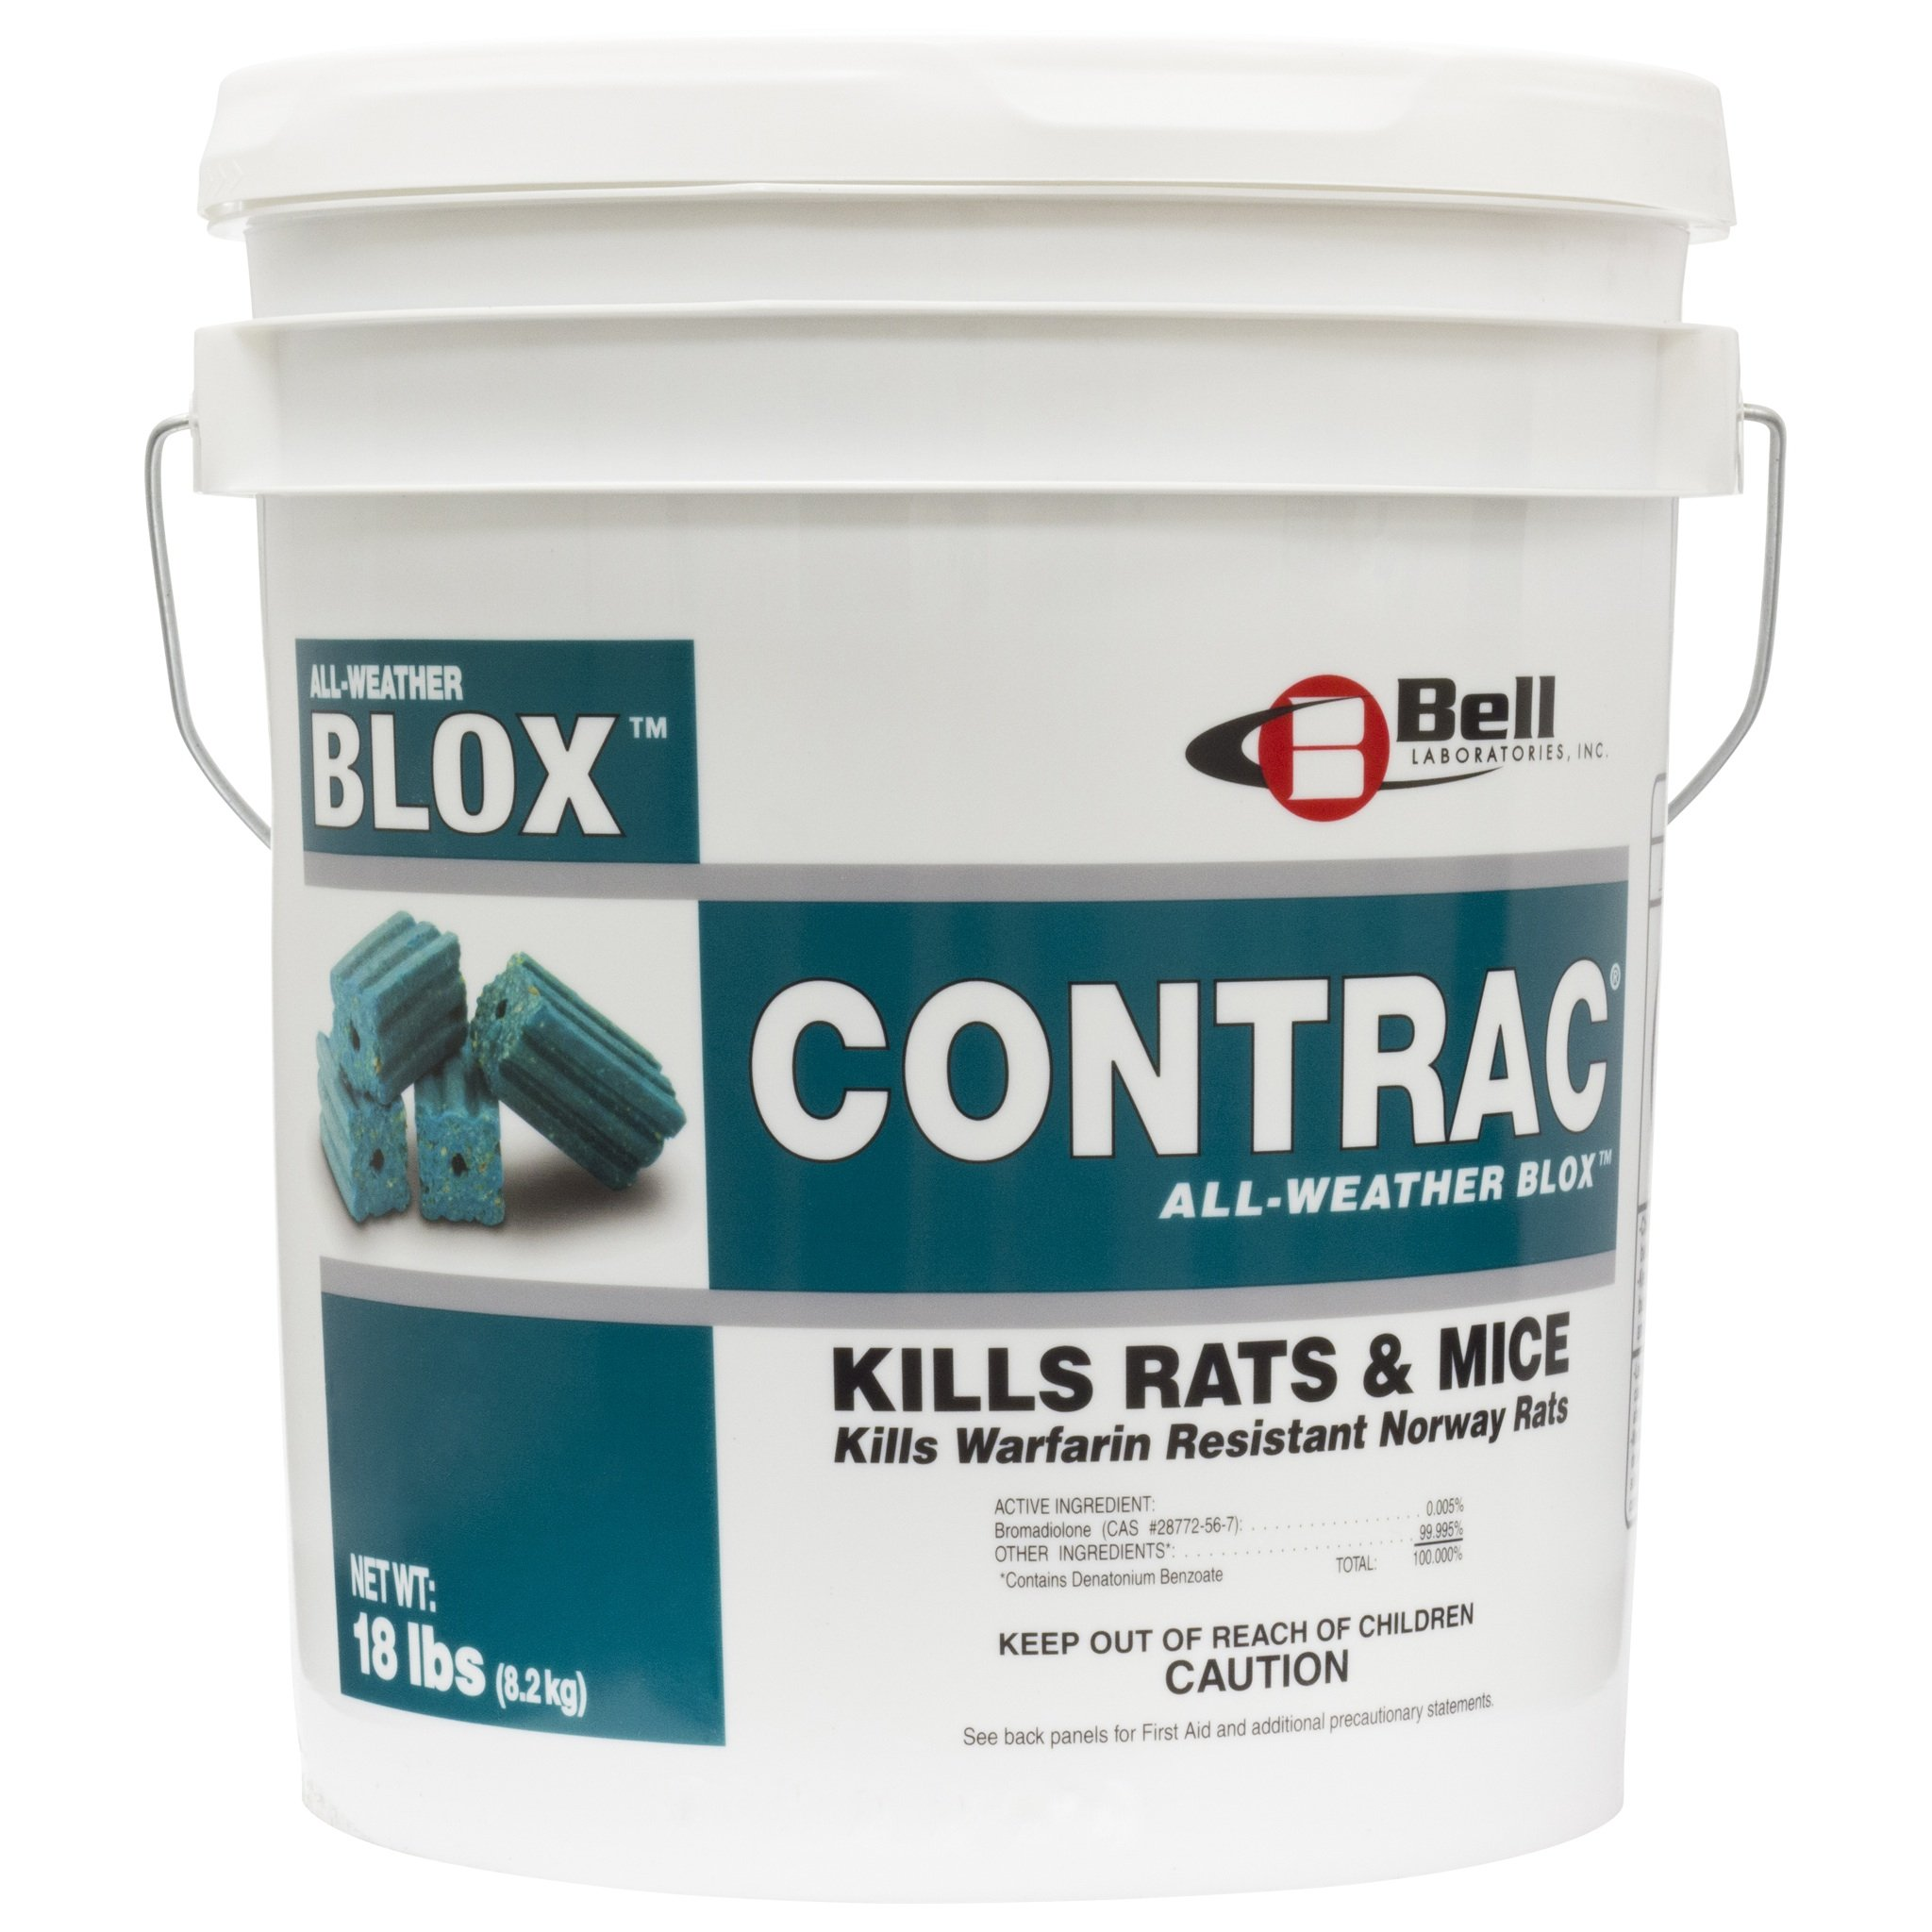 Bell Labs Contrac All Weather Blox 18 Lb Pail BELL by Bell Labs